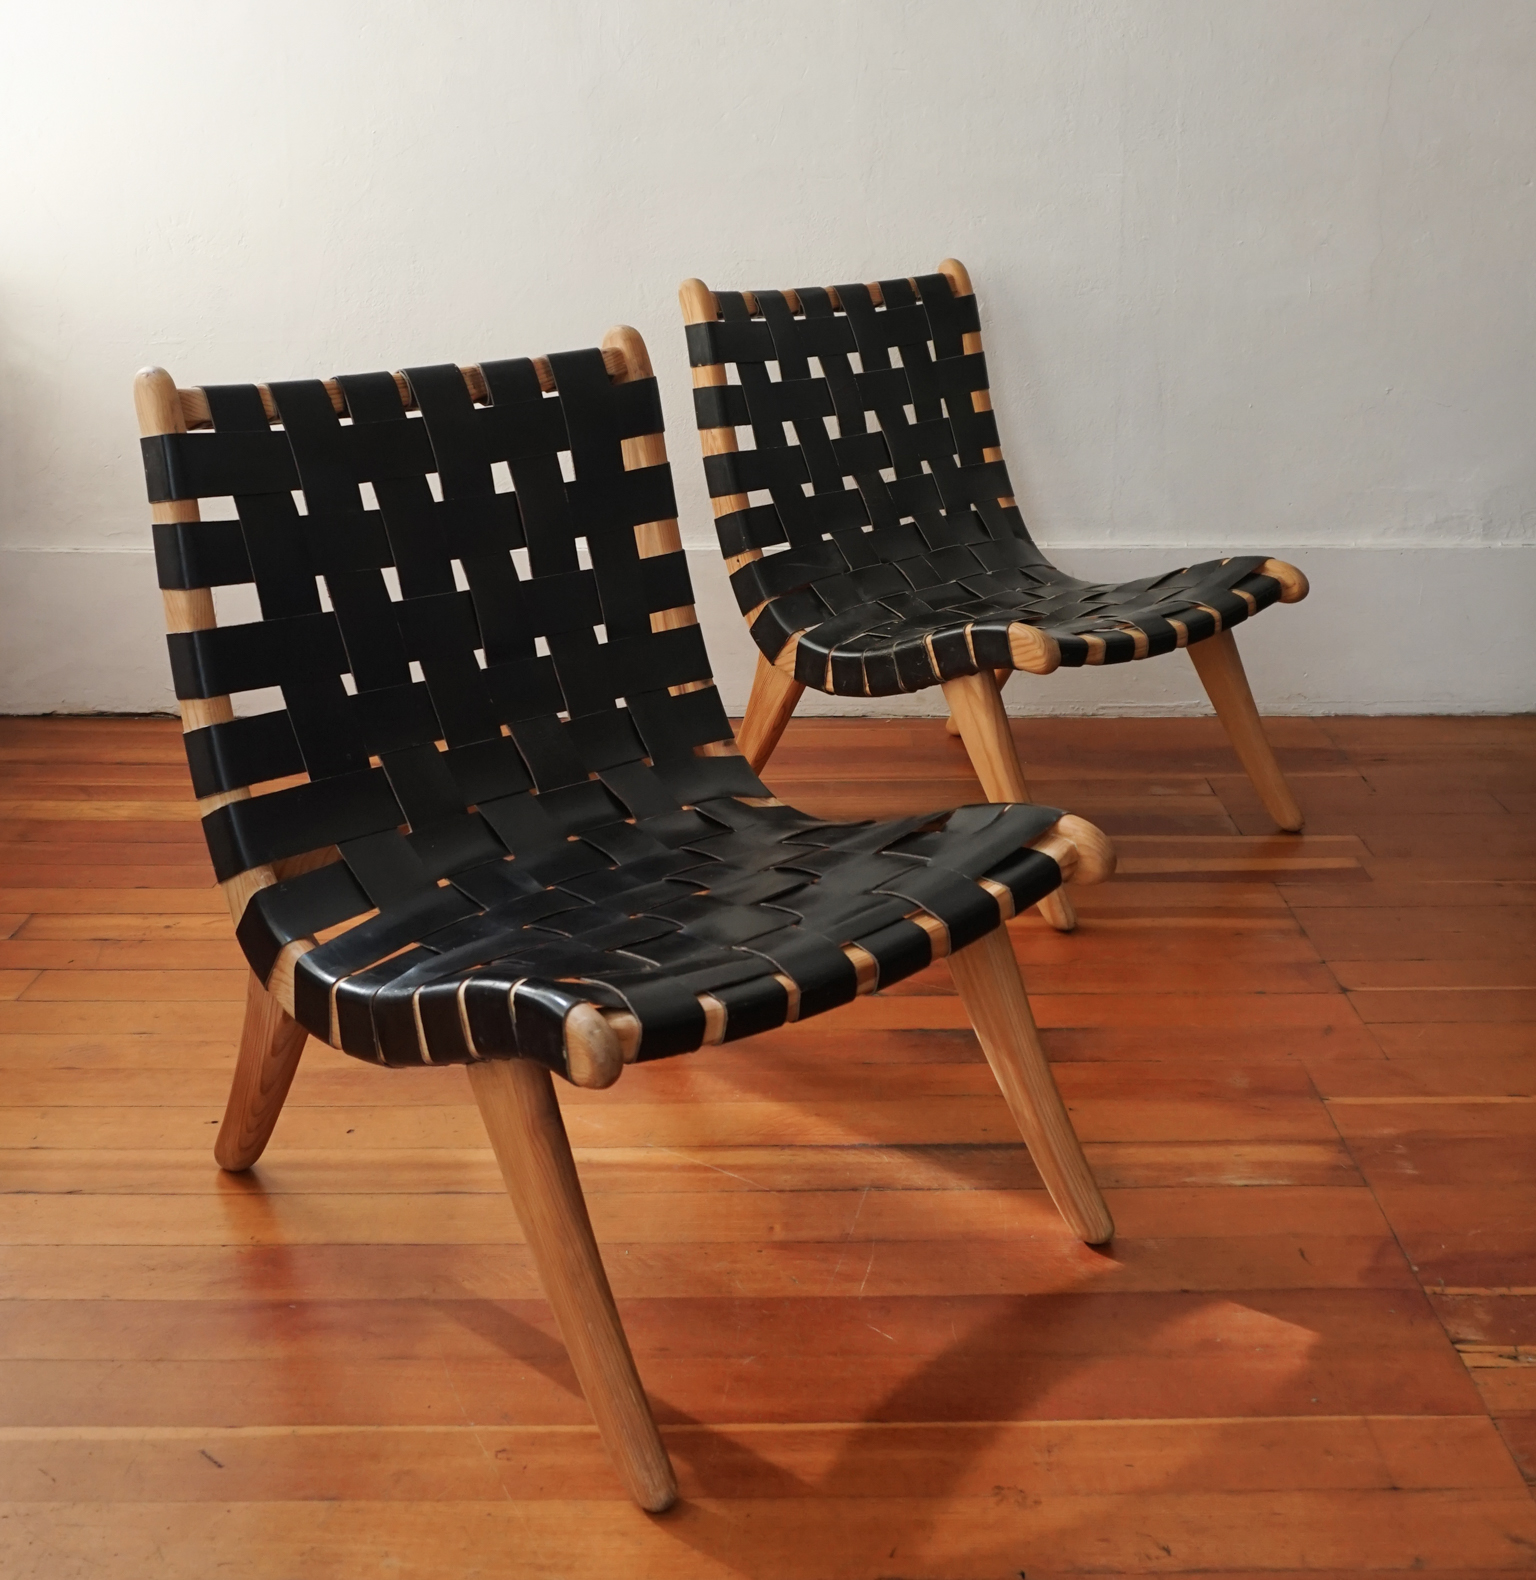 Muebles Domus Van Beuren > Pair Of San Miguelito Chairs By Michael Van Beuren For Domus Of [mjhdah]https://i1.wp.com/www.esotericsurvey.com/wp-content/uploads/2018/01/Michael-Van-Beuren-2.jpg?fit=1536%2C1536